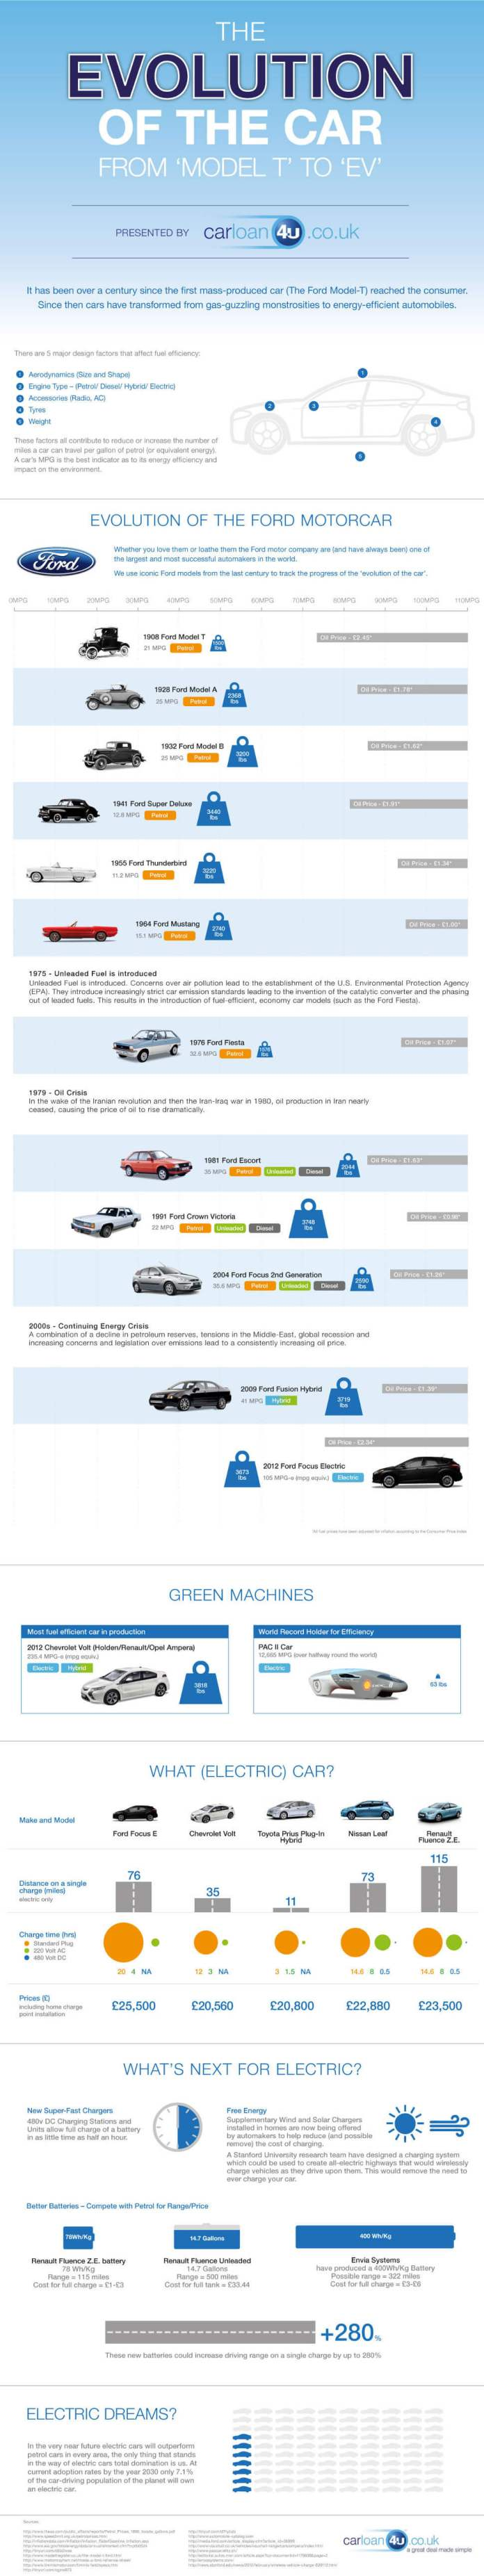 Evolution of the Car - Infographic